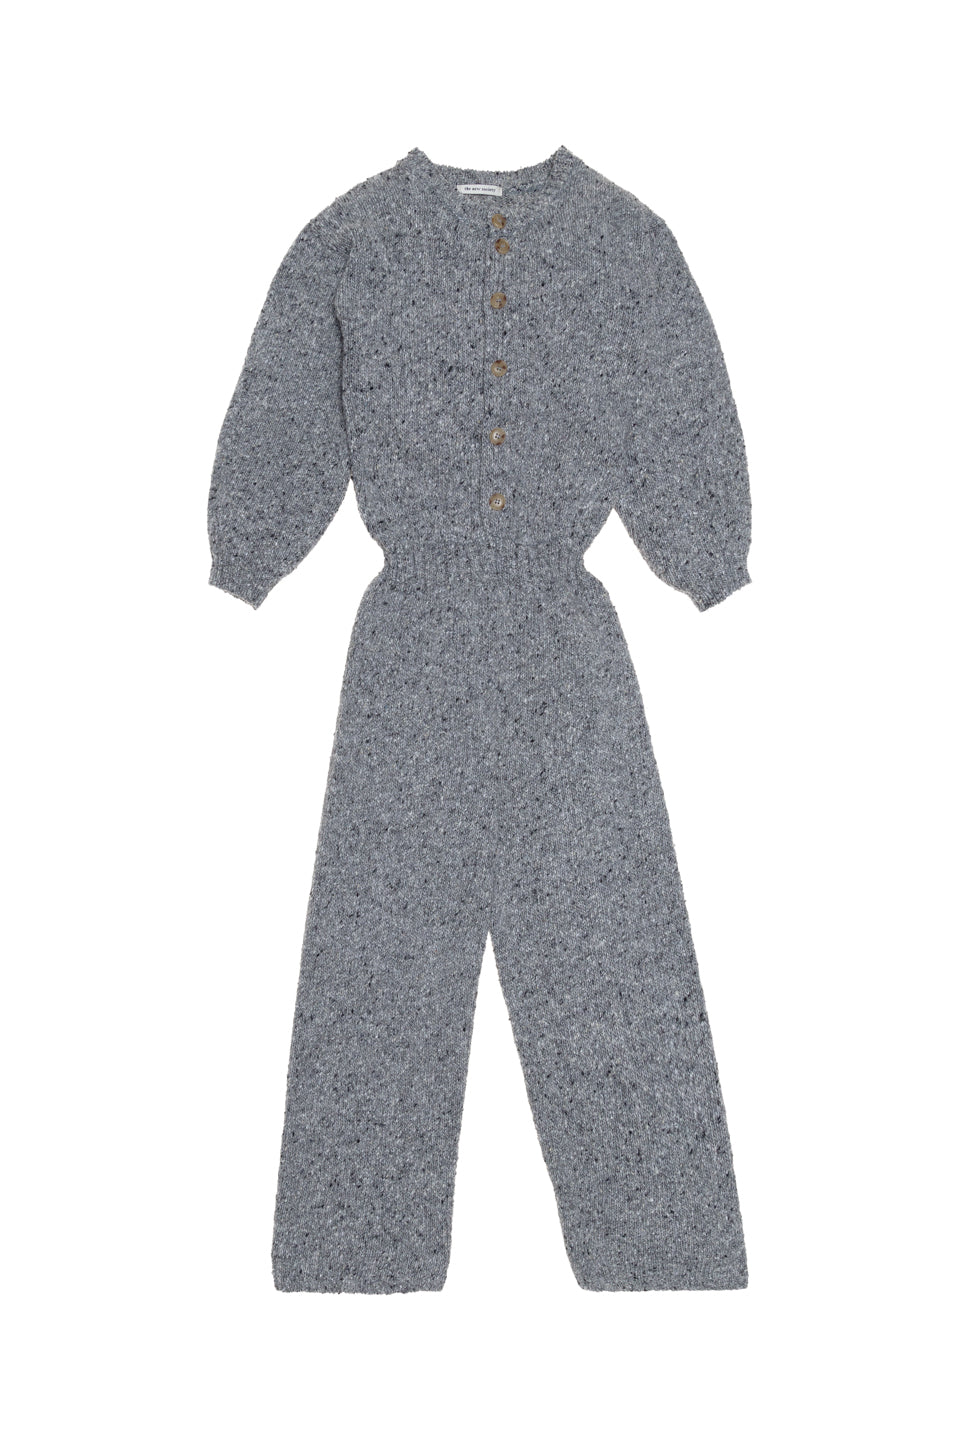 Maia Knit Jumpsuit - Grey Melange